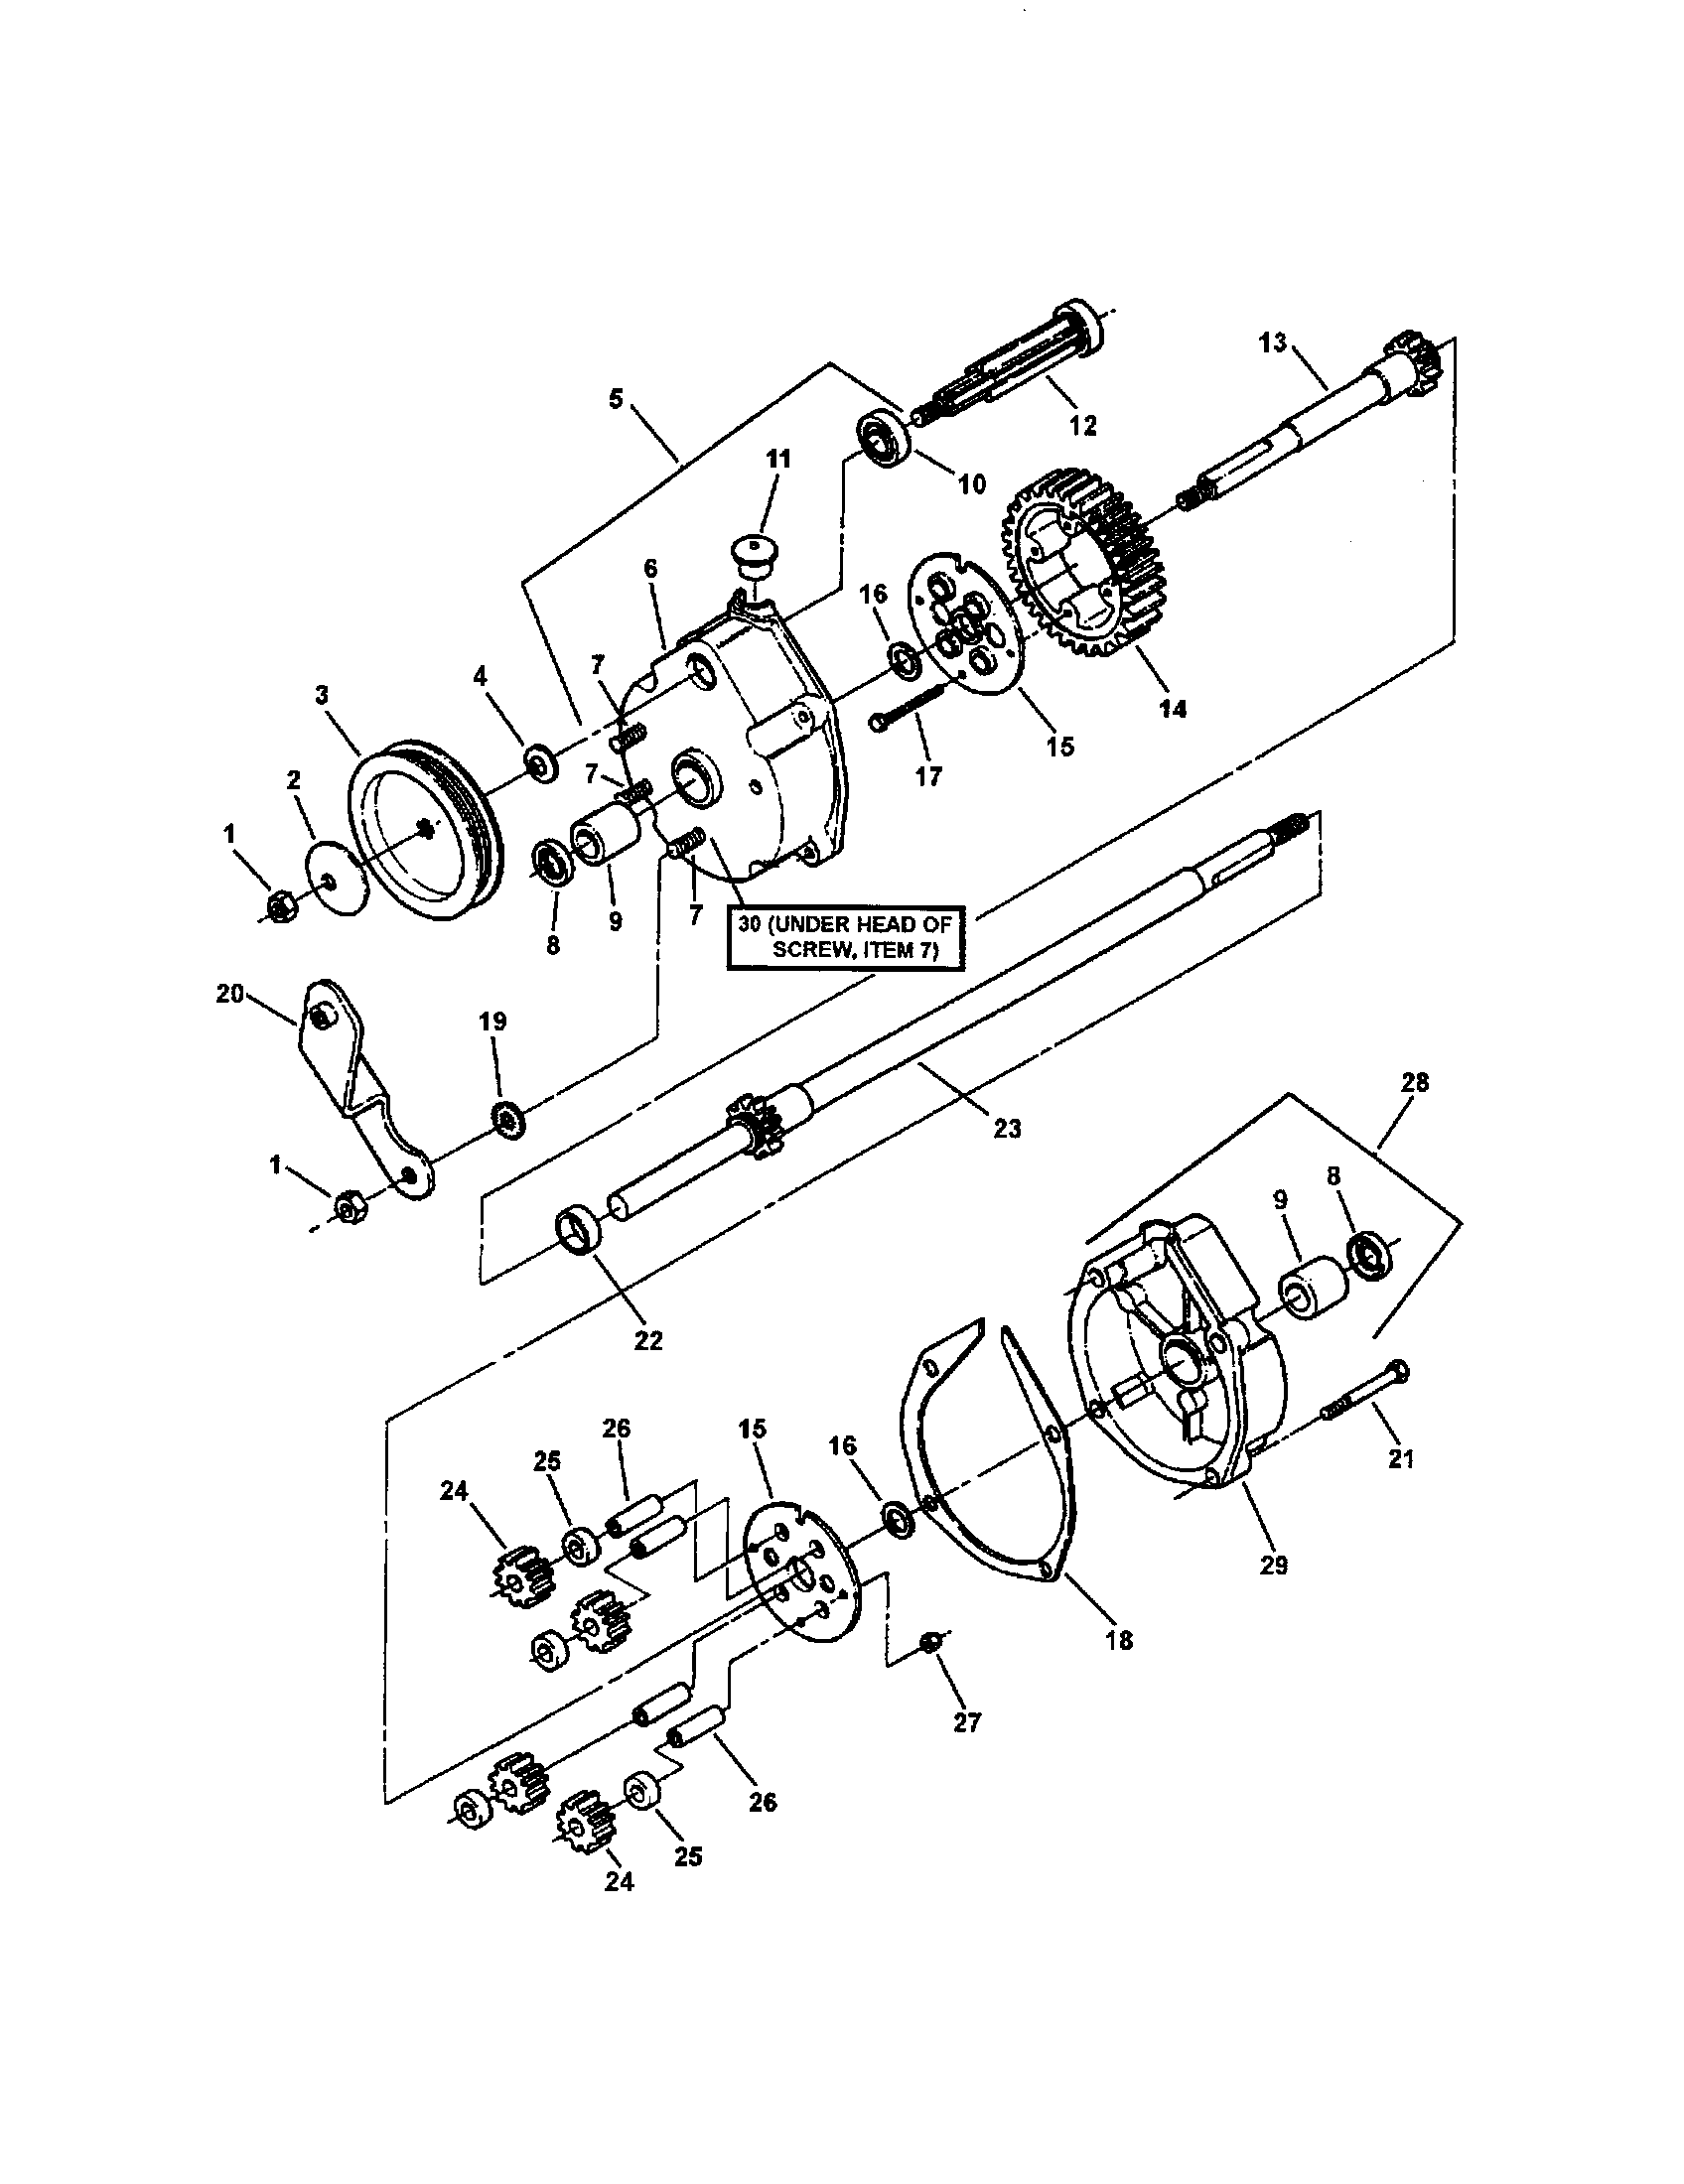 TRANSMISSION (DIFFERENTIAL) Diagram & Parts List for Model